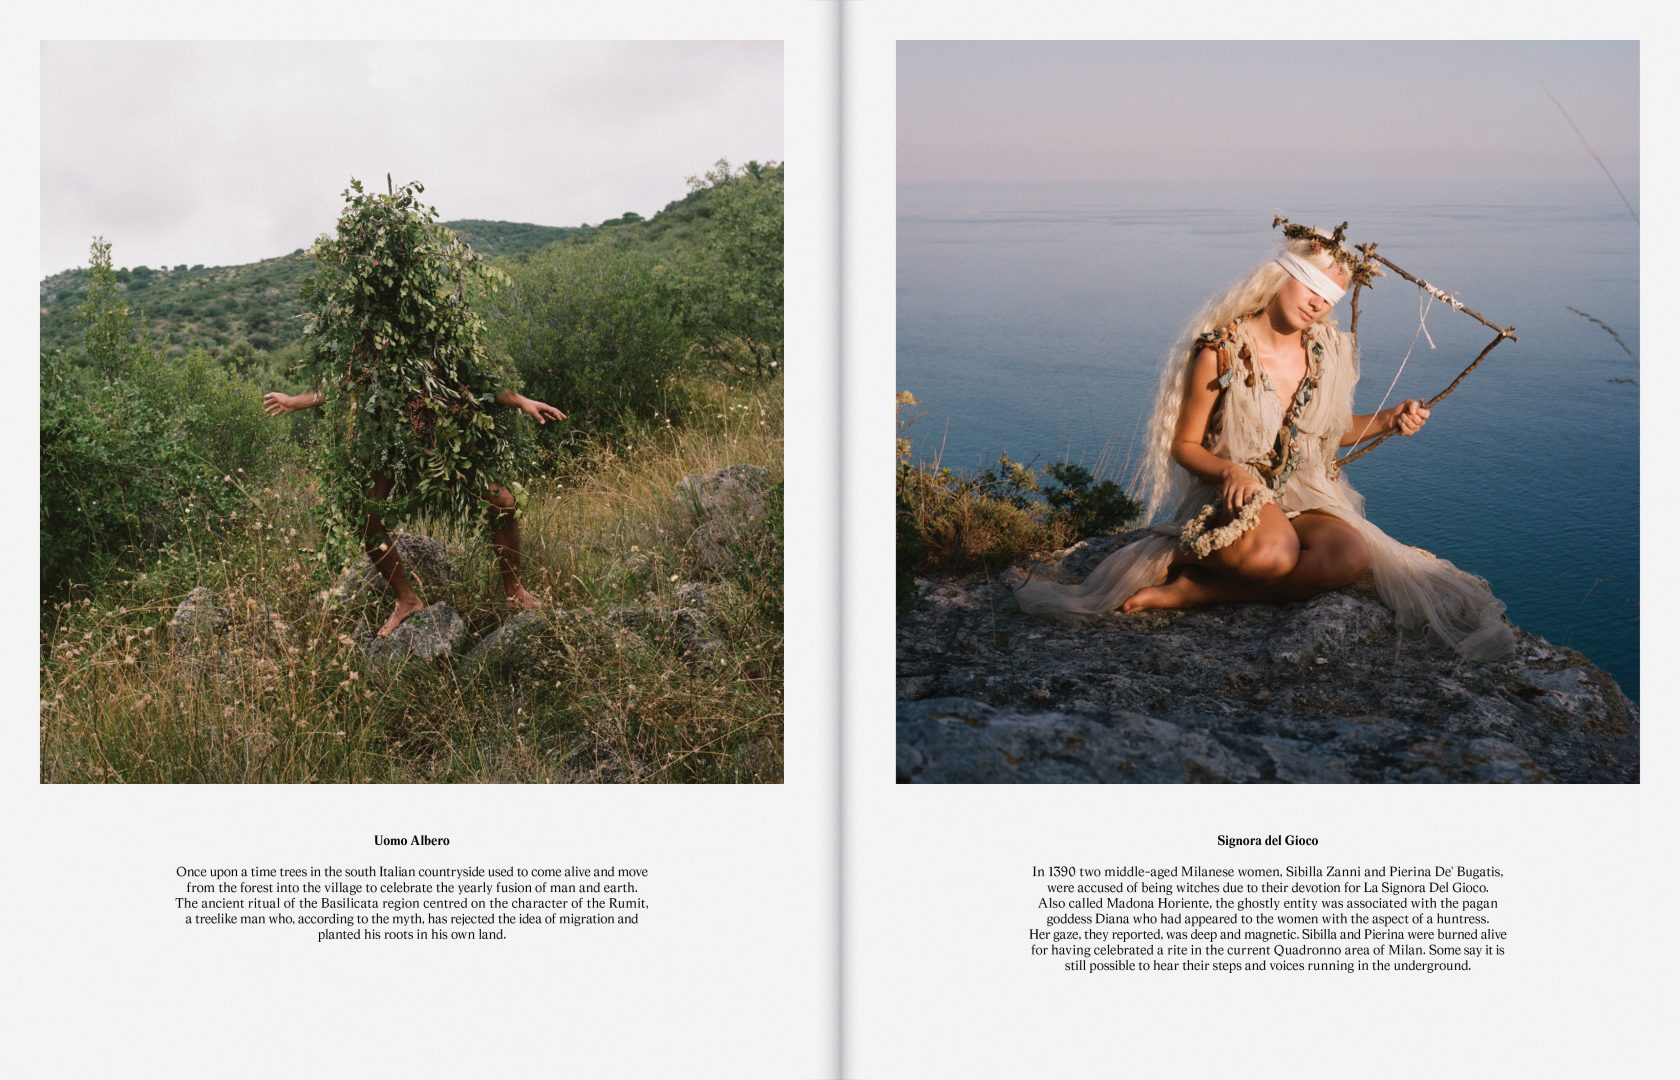 Sali e Tabacchi Journal N°01, Photographed by Alessandro Merlo